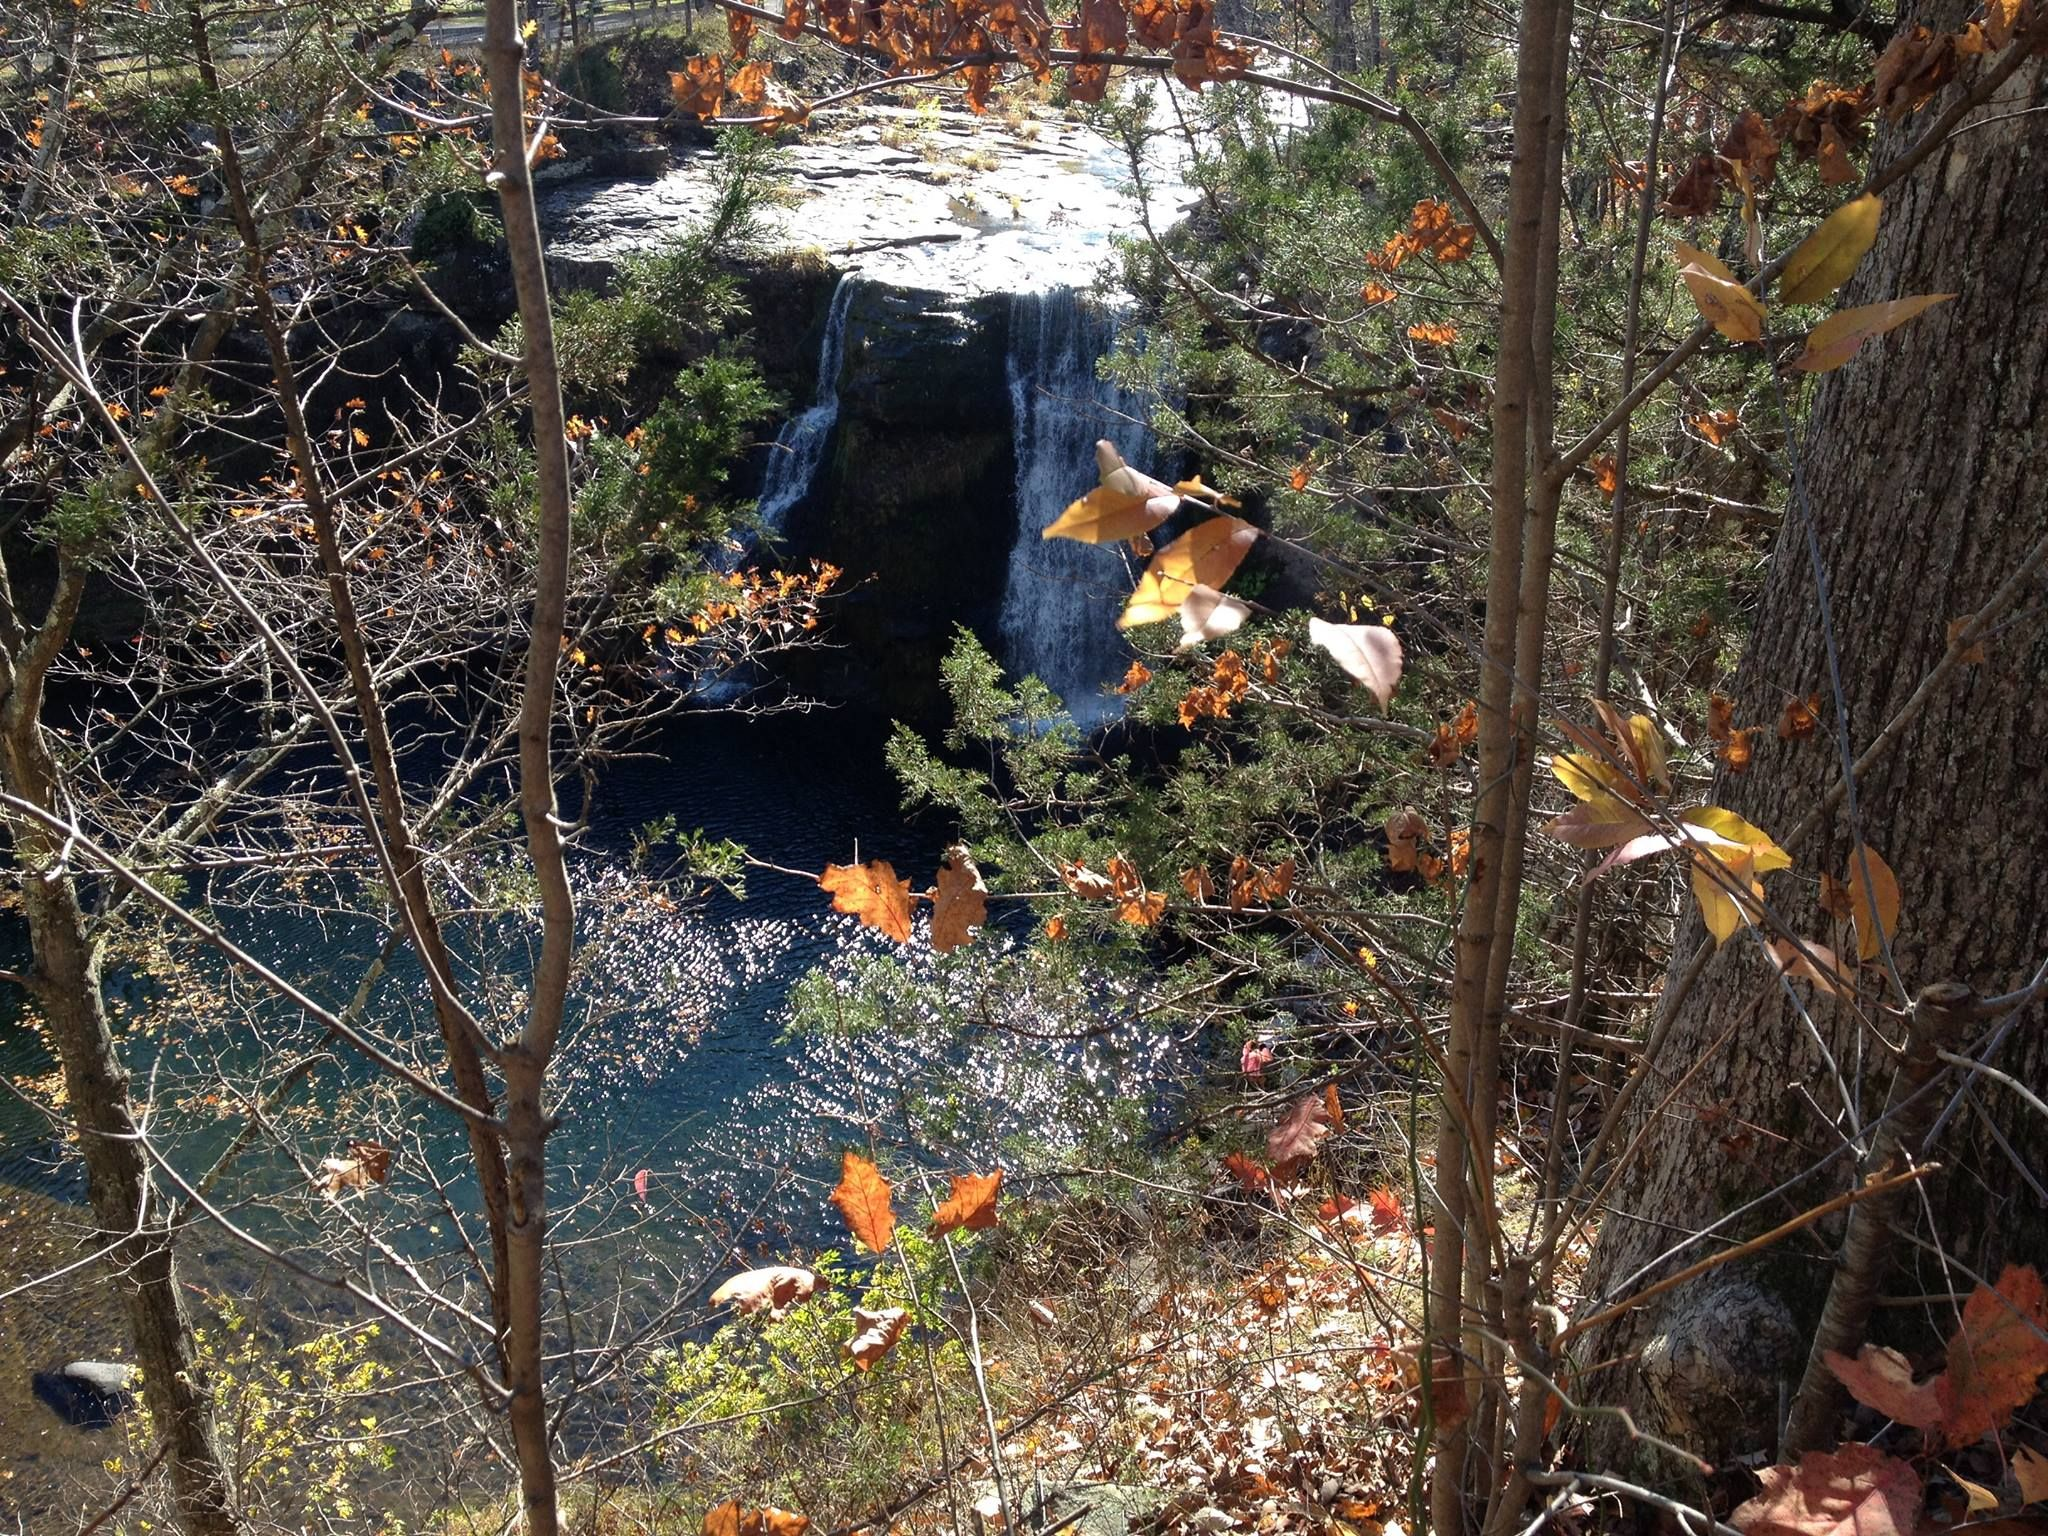 A Picture From The Tumblin Falls House Property Overlooking Shinglekill